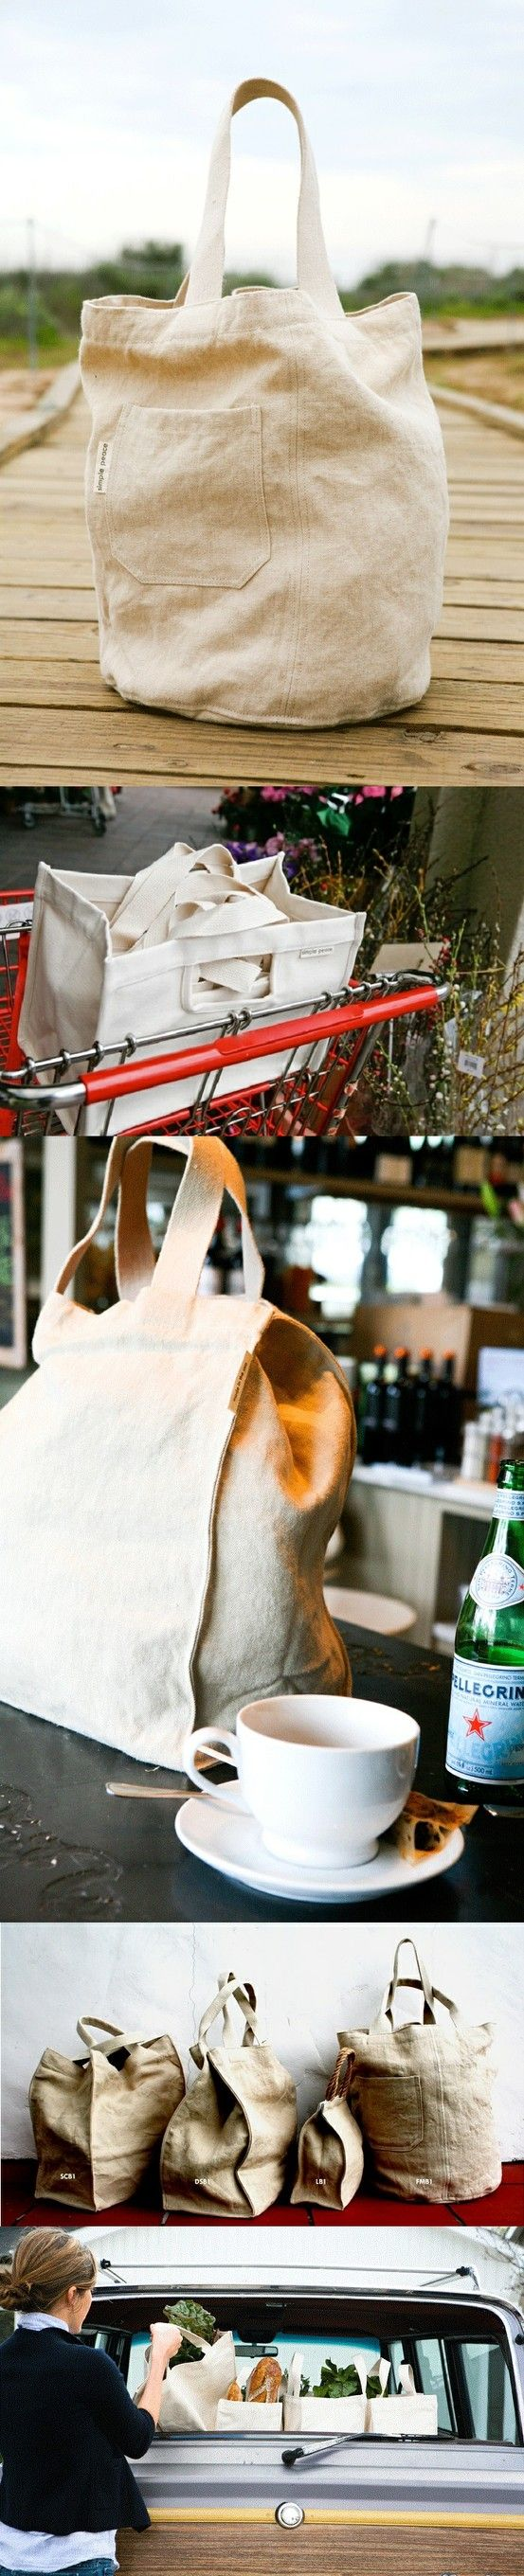 Simple Peace shopping bags were created by California based designer and green movement enthusiast DeAnna Reposa. She found herself frustrated with poor quality of reusable bags offered on the market, so she took it upon herself to create a perfect eco-friendly shopper.